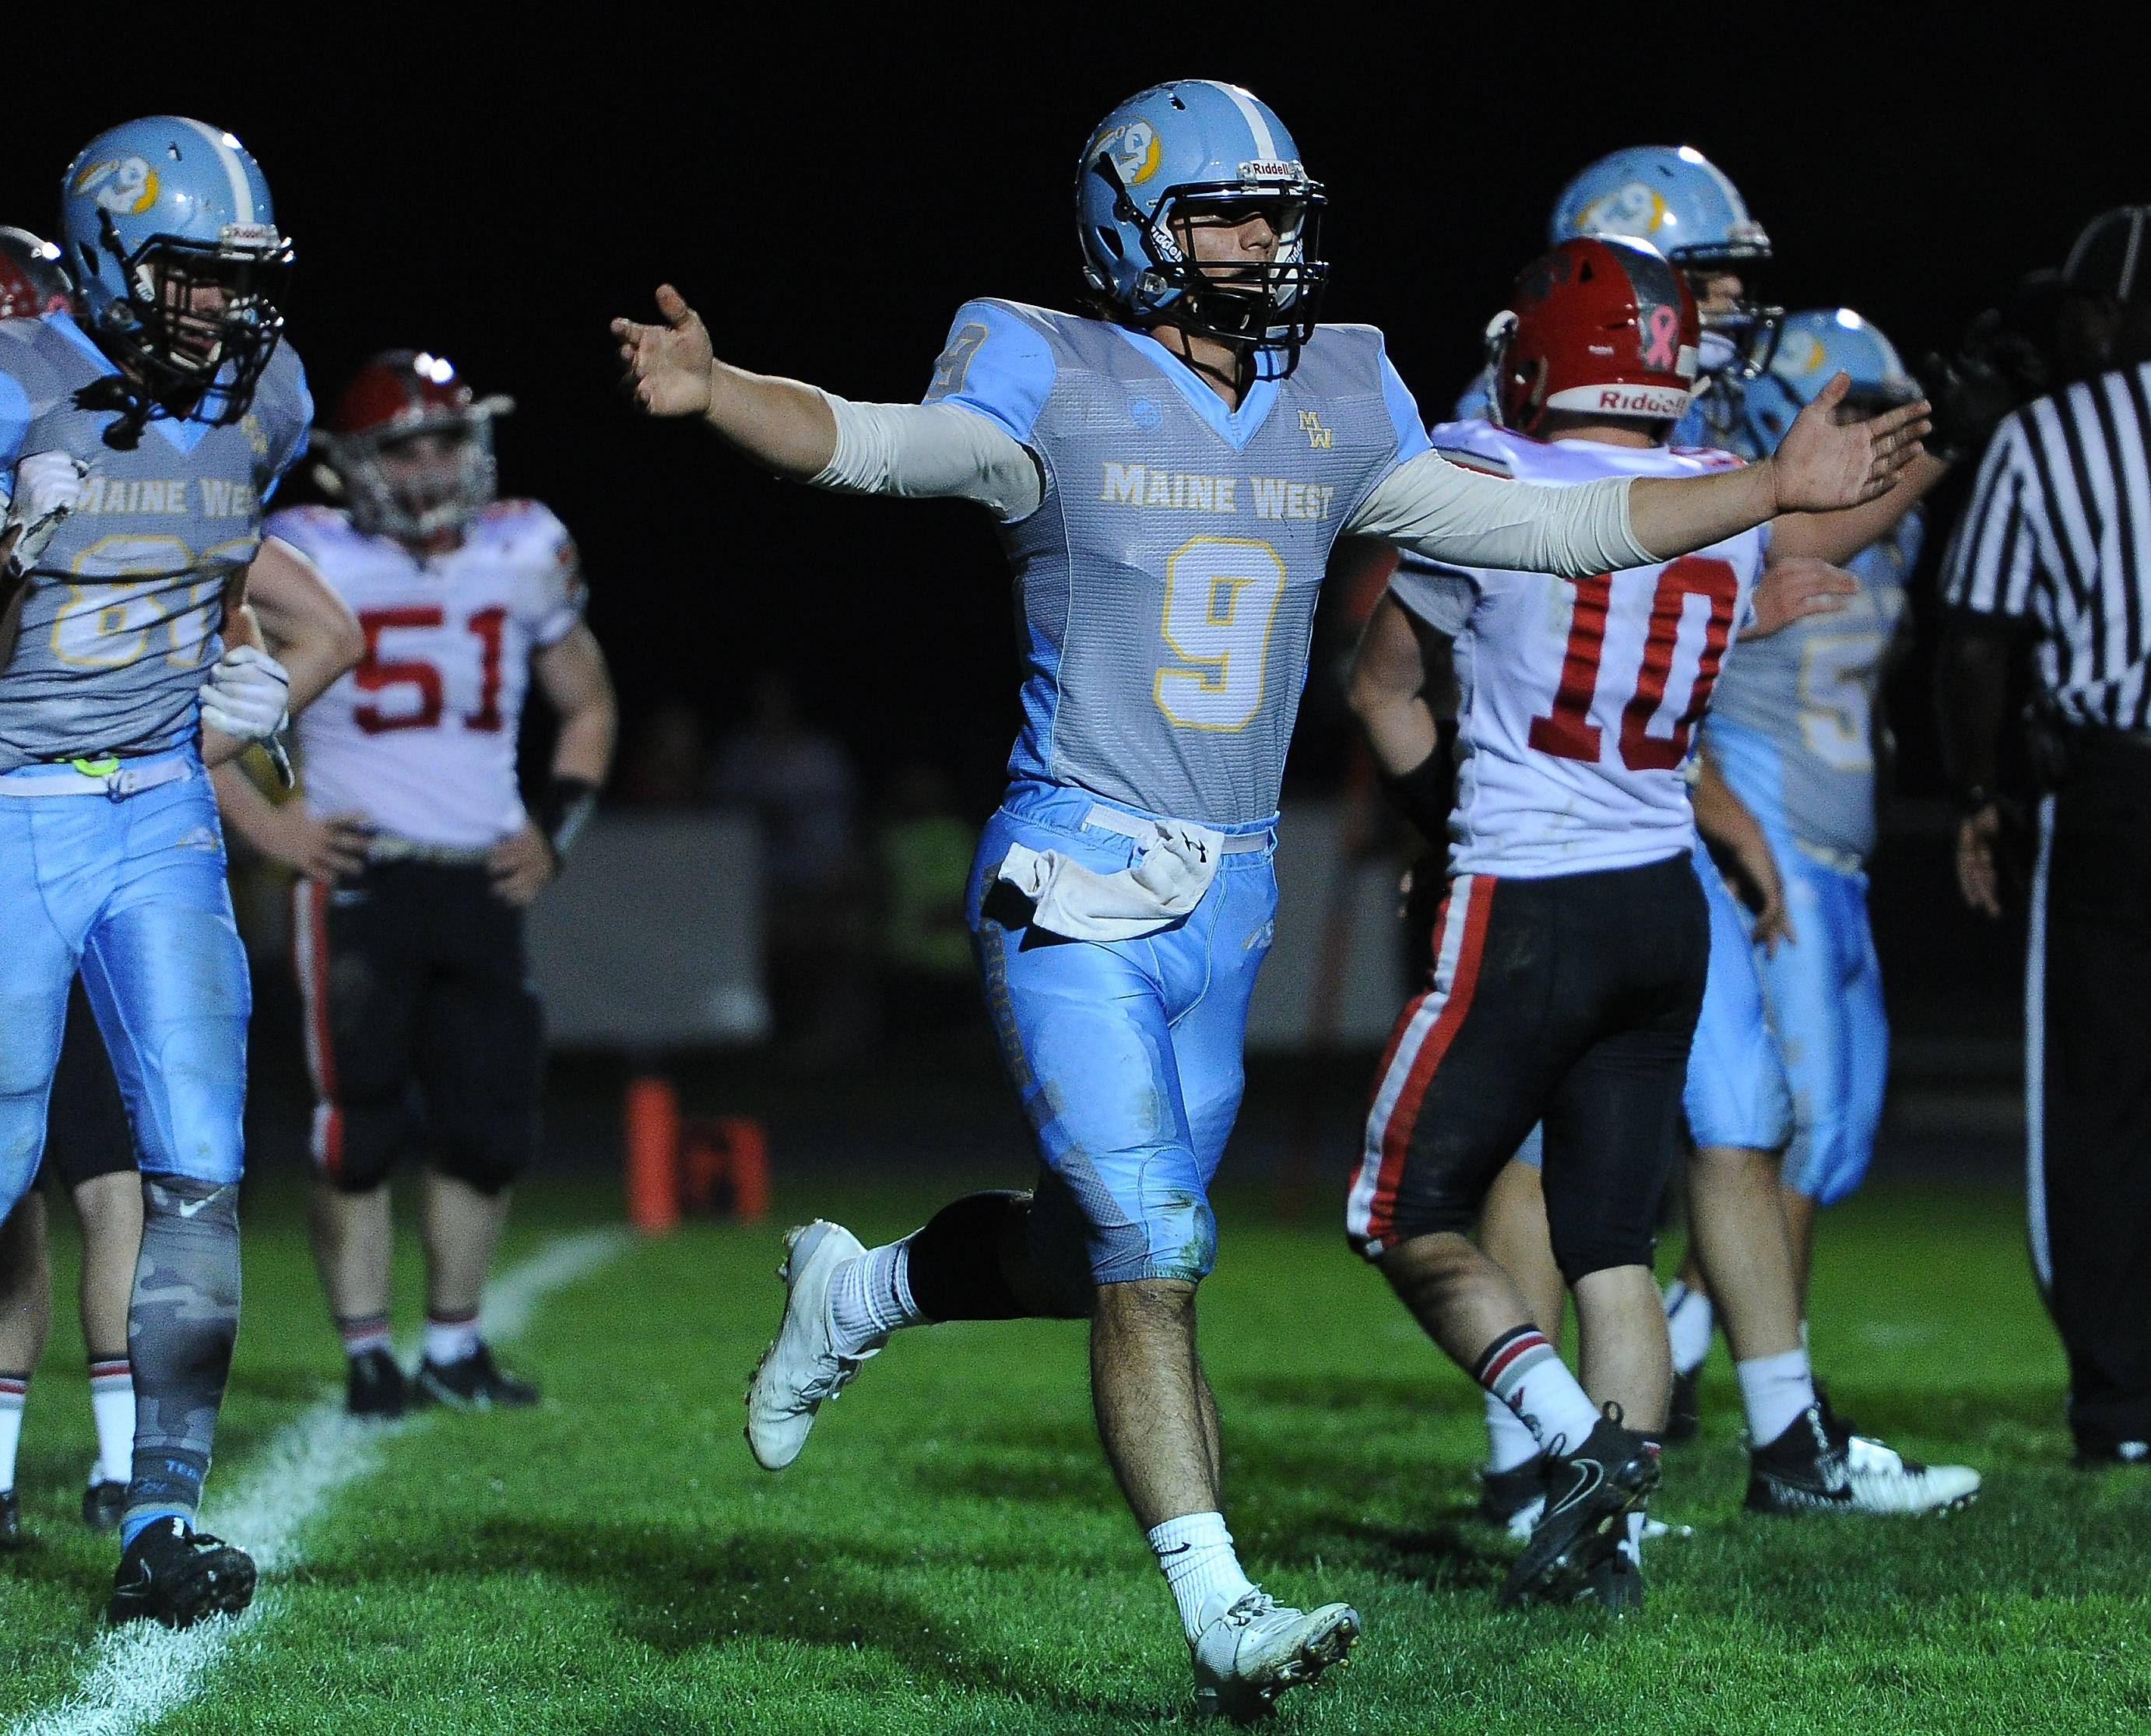 Maine West quarterback George Markakis keeps the ball for a TD and celebrates by running off the field on Friday against visiting Deerfield.